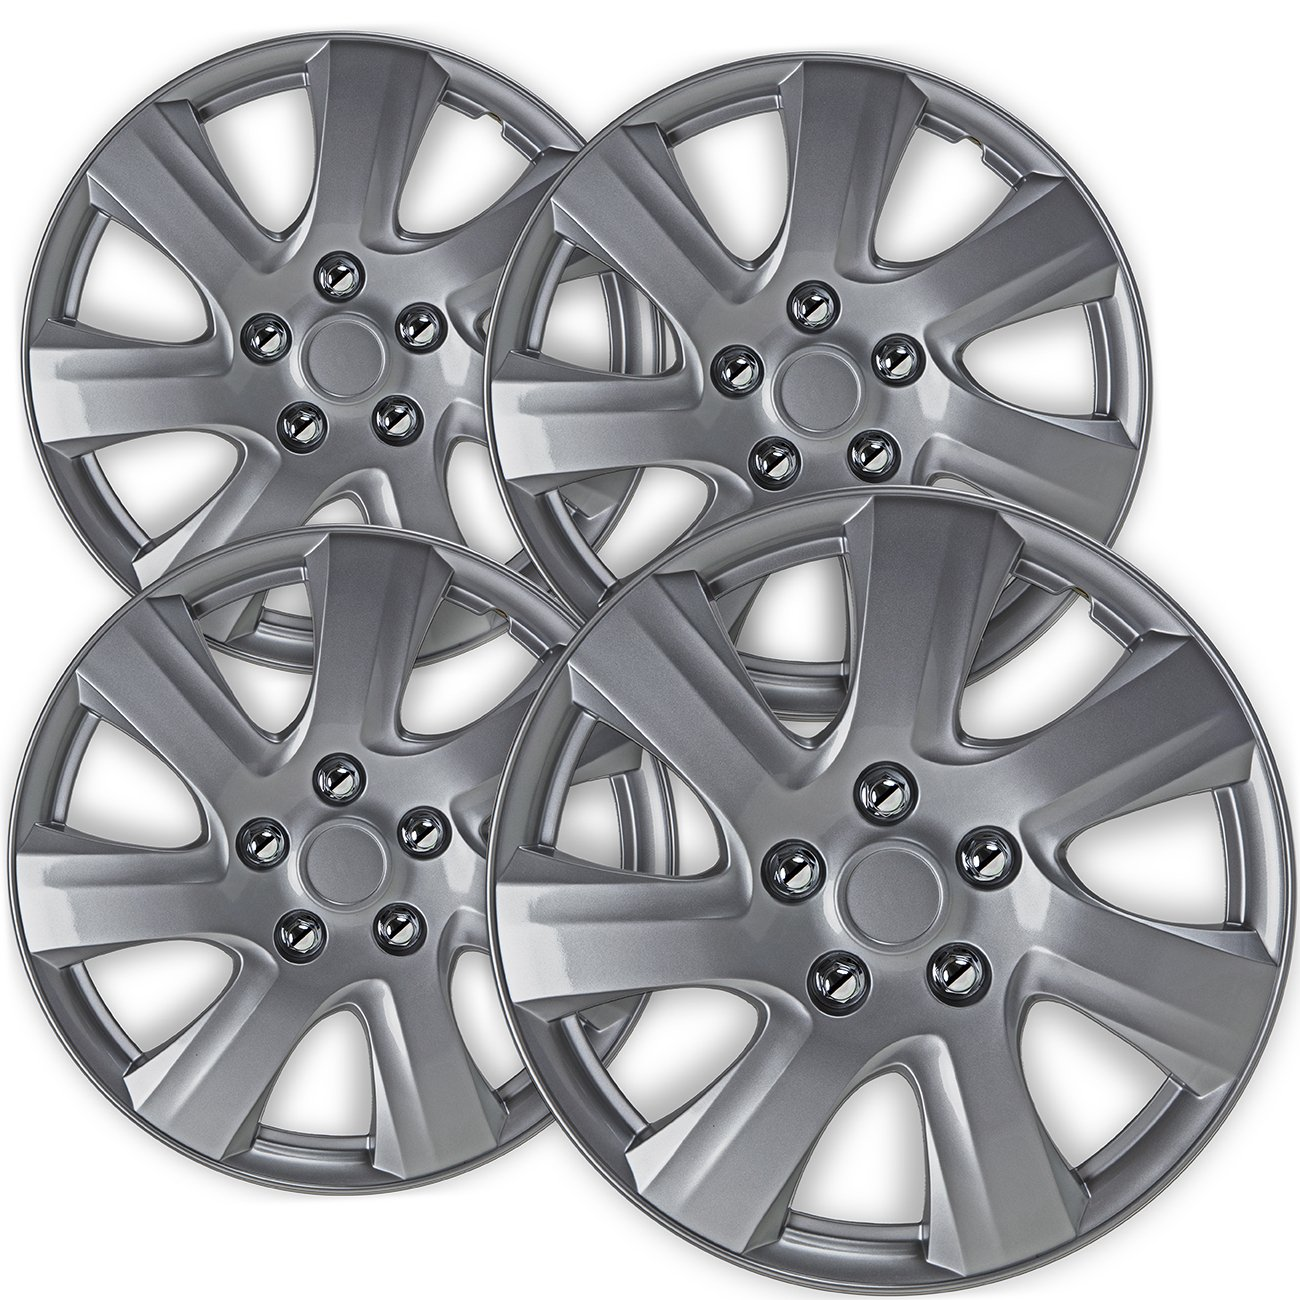 OxGord Hubcaps for Toyota Camry (Pack of 4) Wheel Covers - 16 Inch Silver Replacement by OxGord (Image #1)